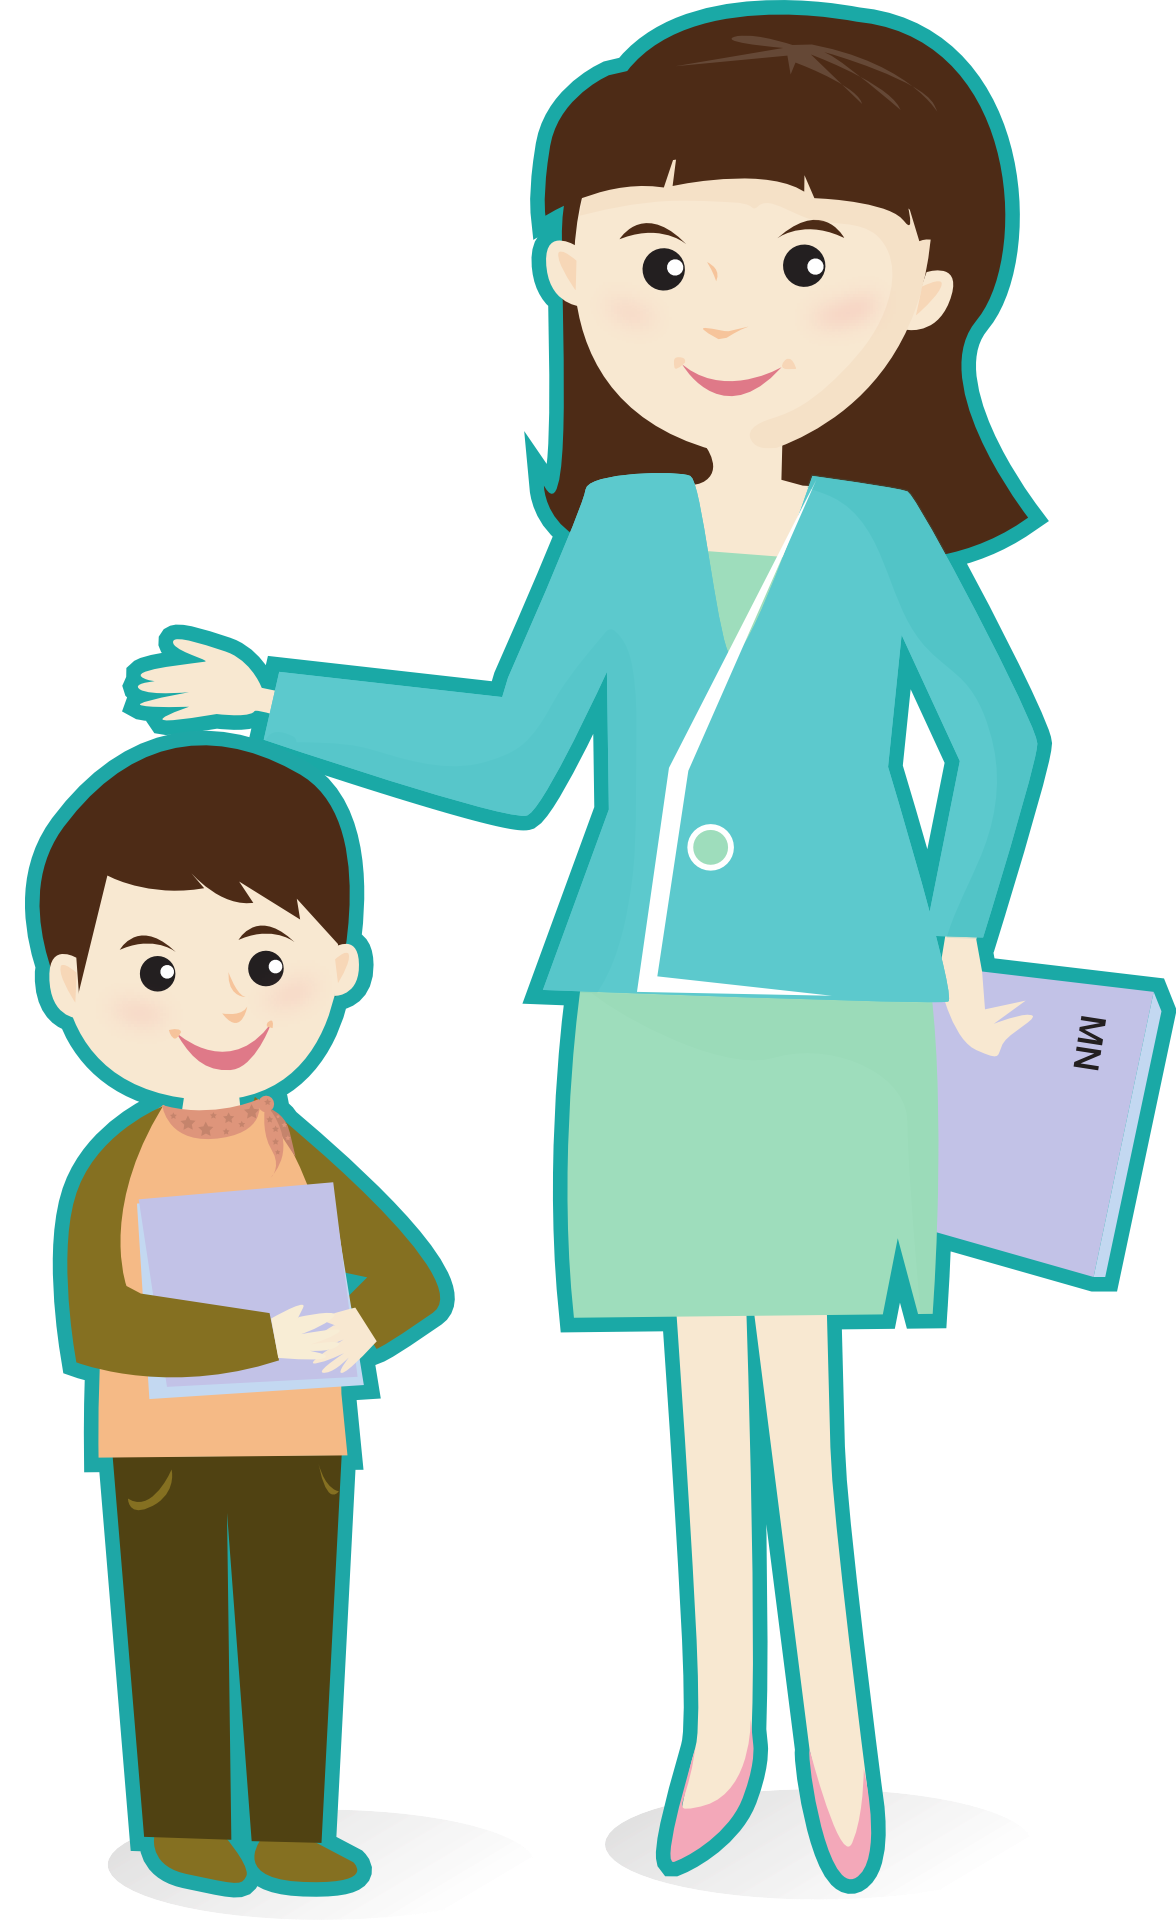 Feelings clipart teacher. Image result for clip